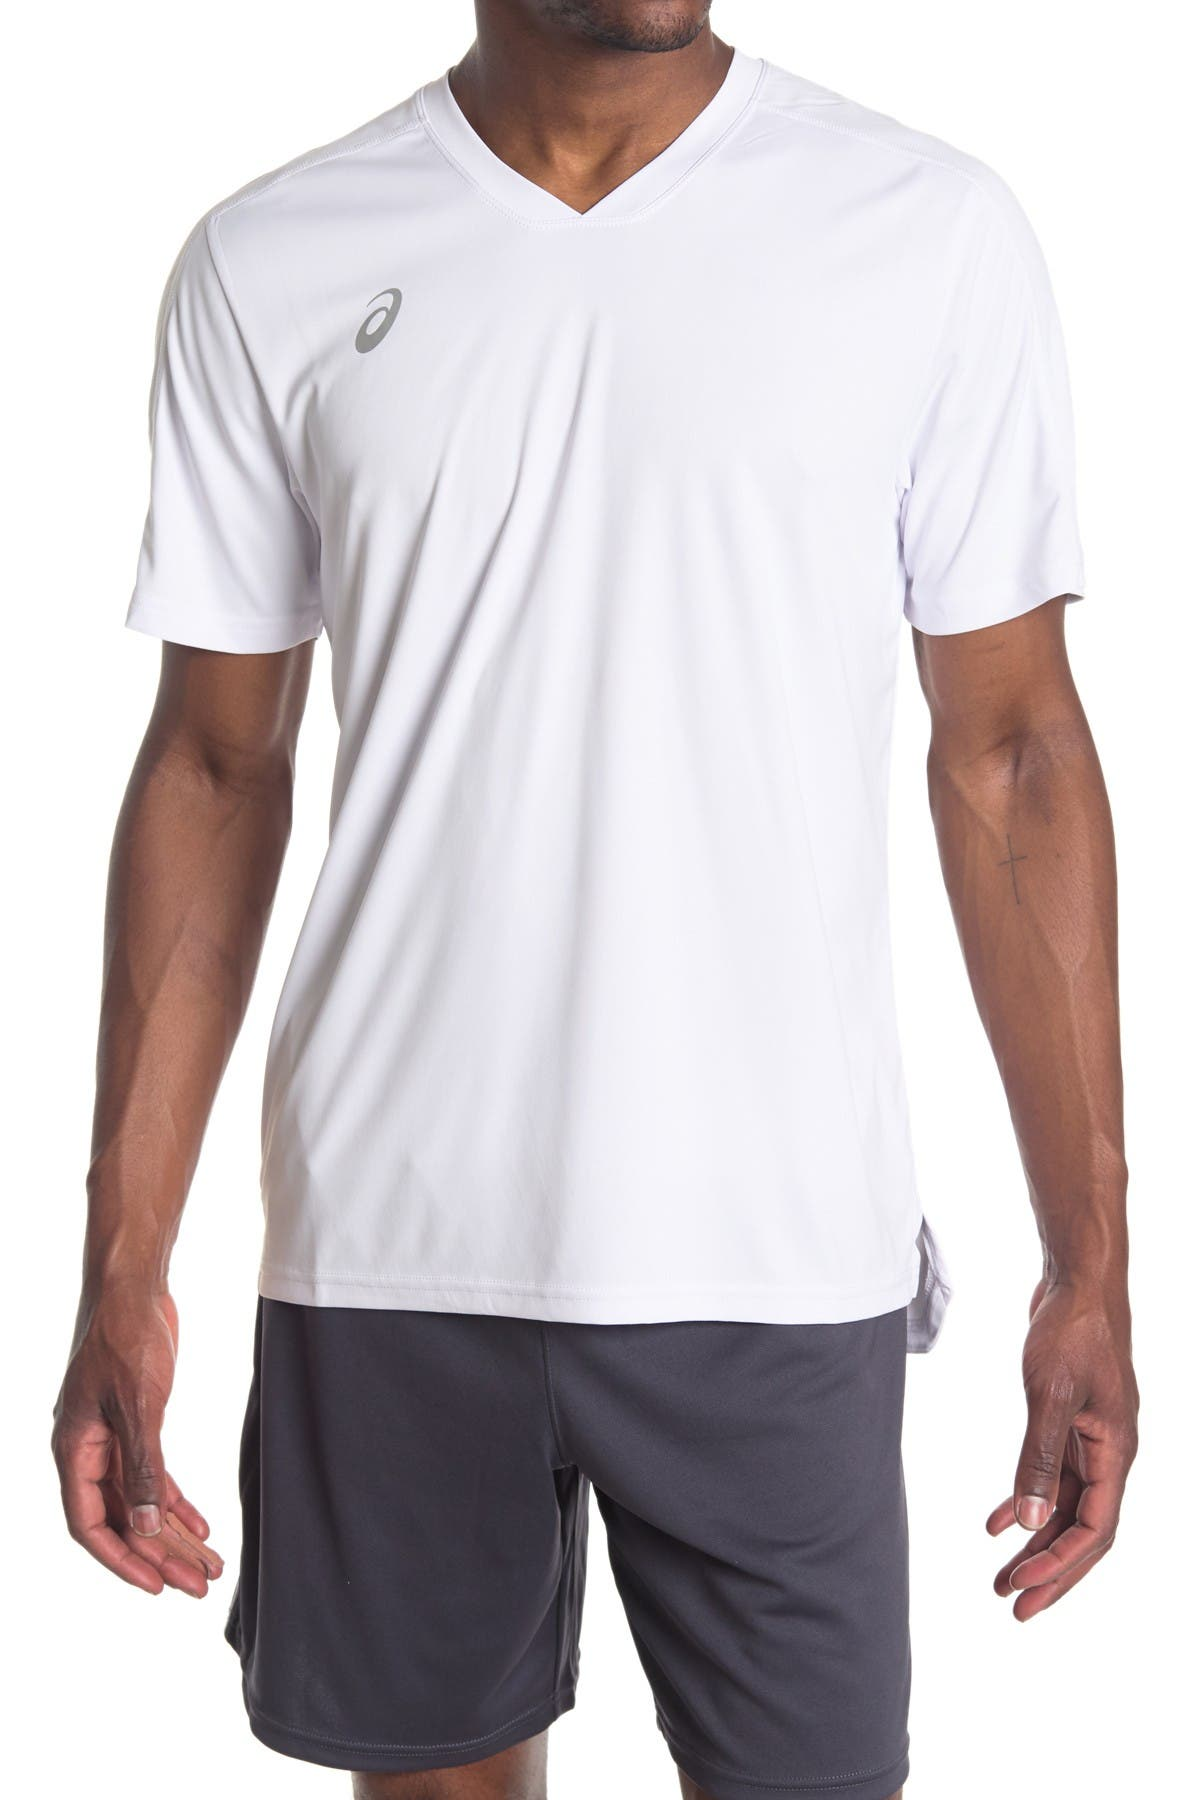 Image of ASICS Centerline Jersey